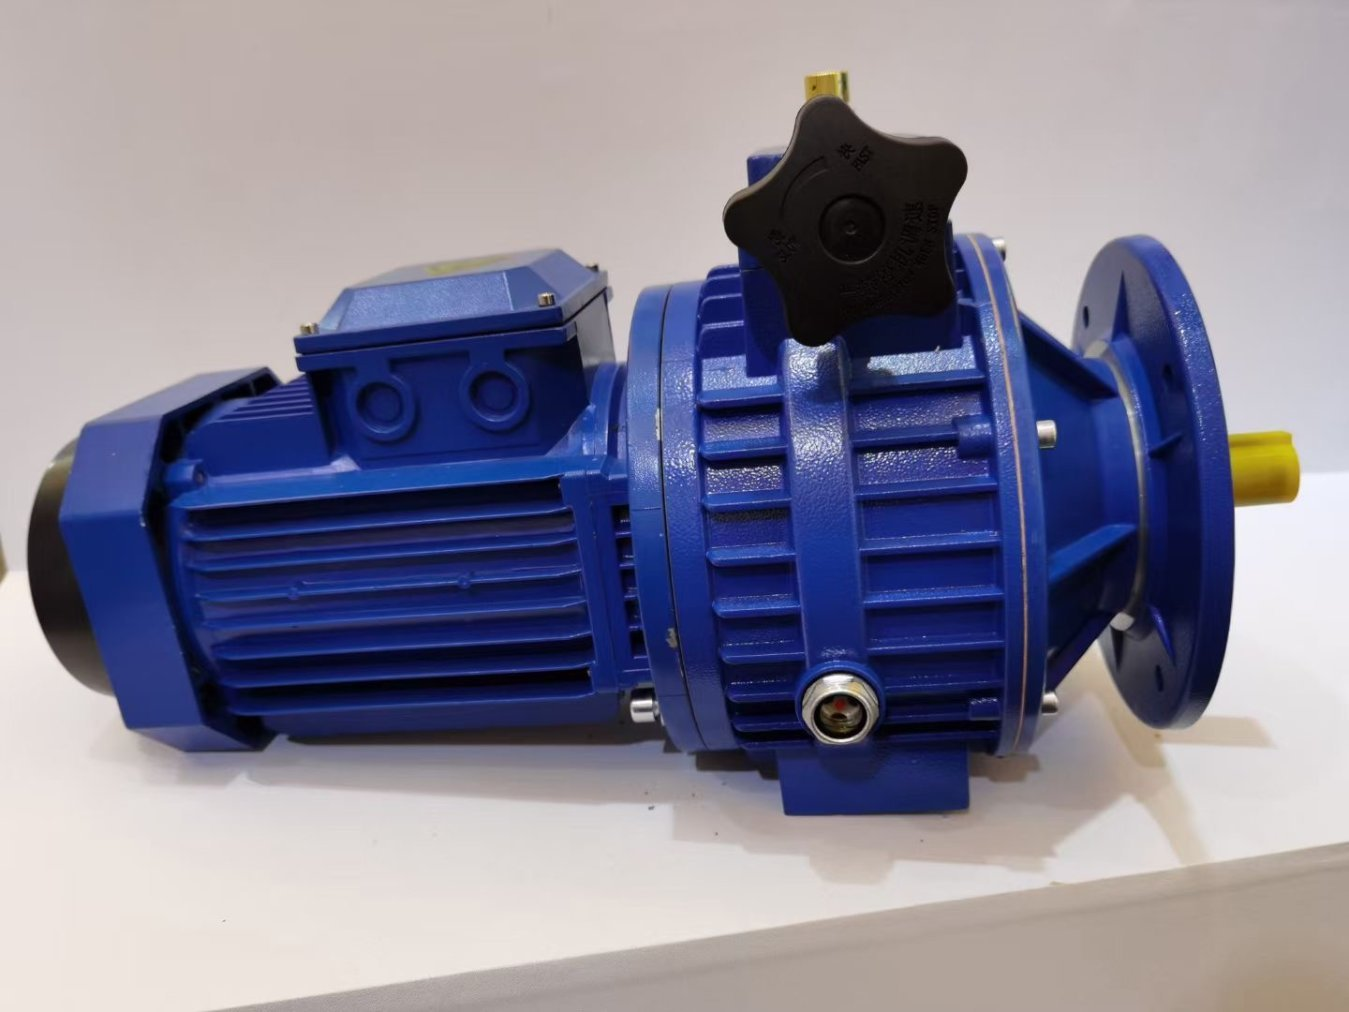 Gearbox for the Motor 1KW need Torque Capacity of 200-300 N.m